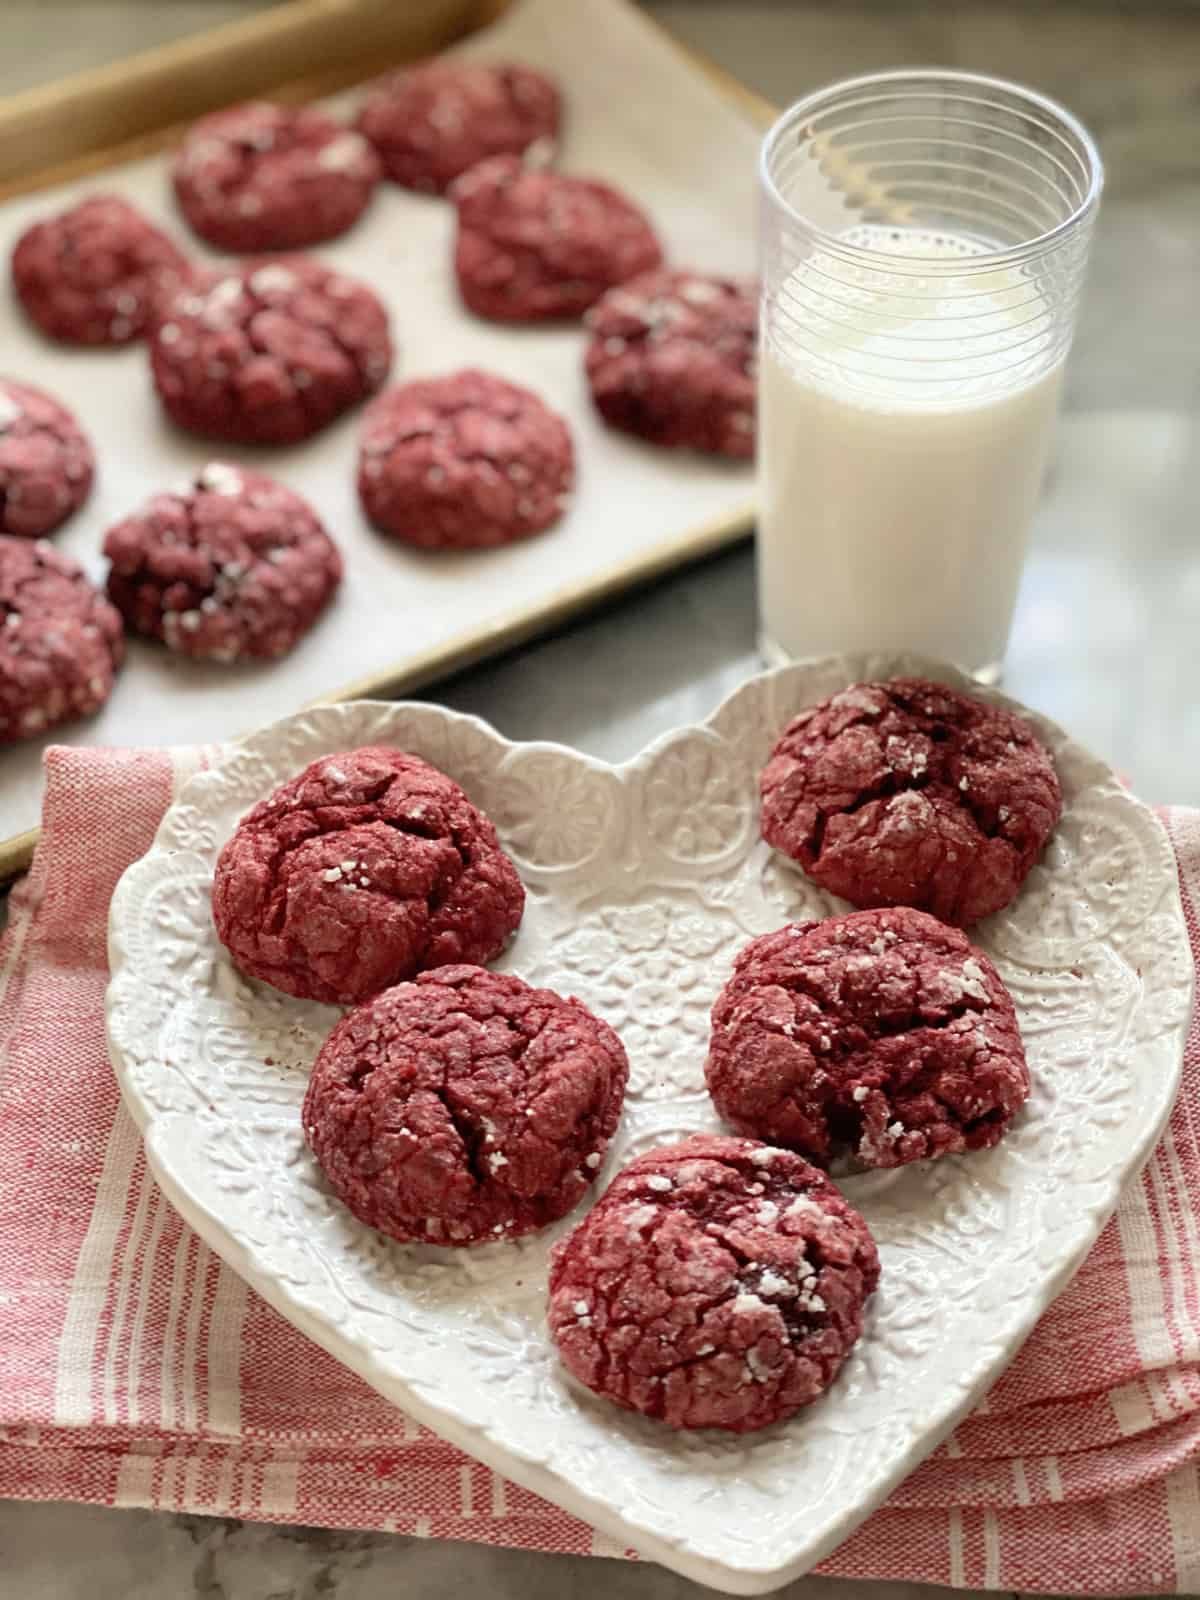 White heart shaped plate with five red cookies resting on it.